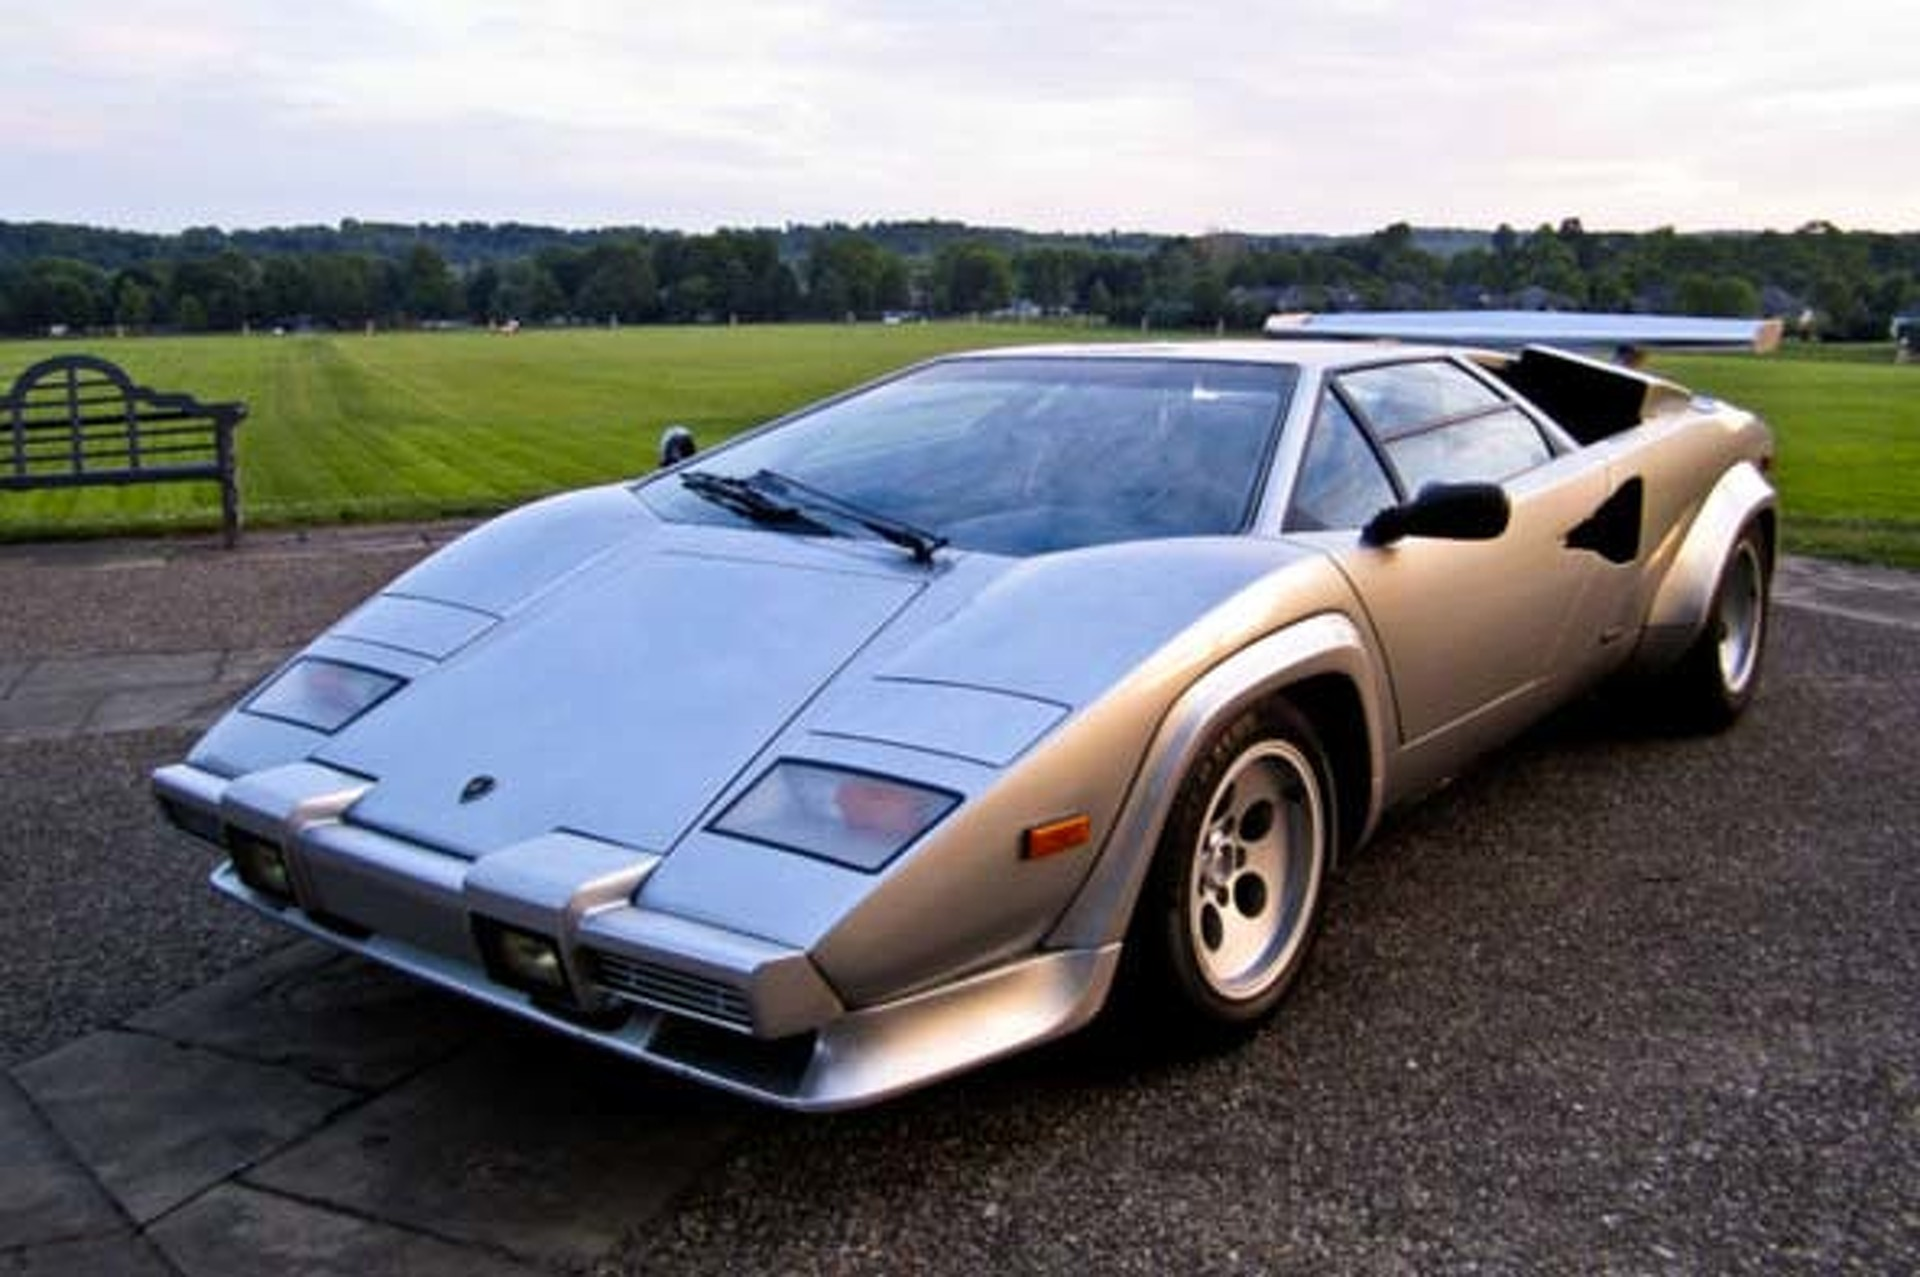 Ebay Lamborghini Countach Replica Sale